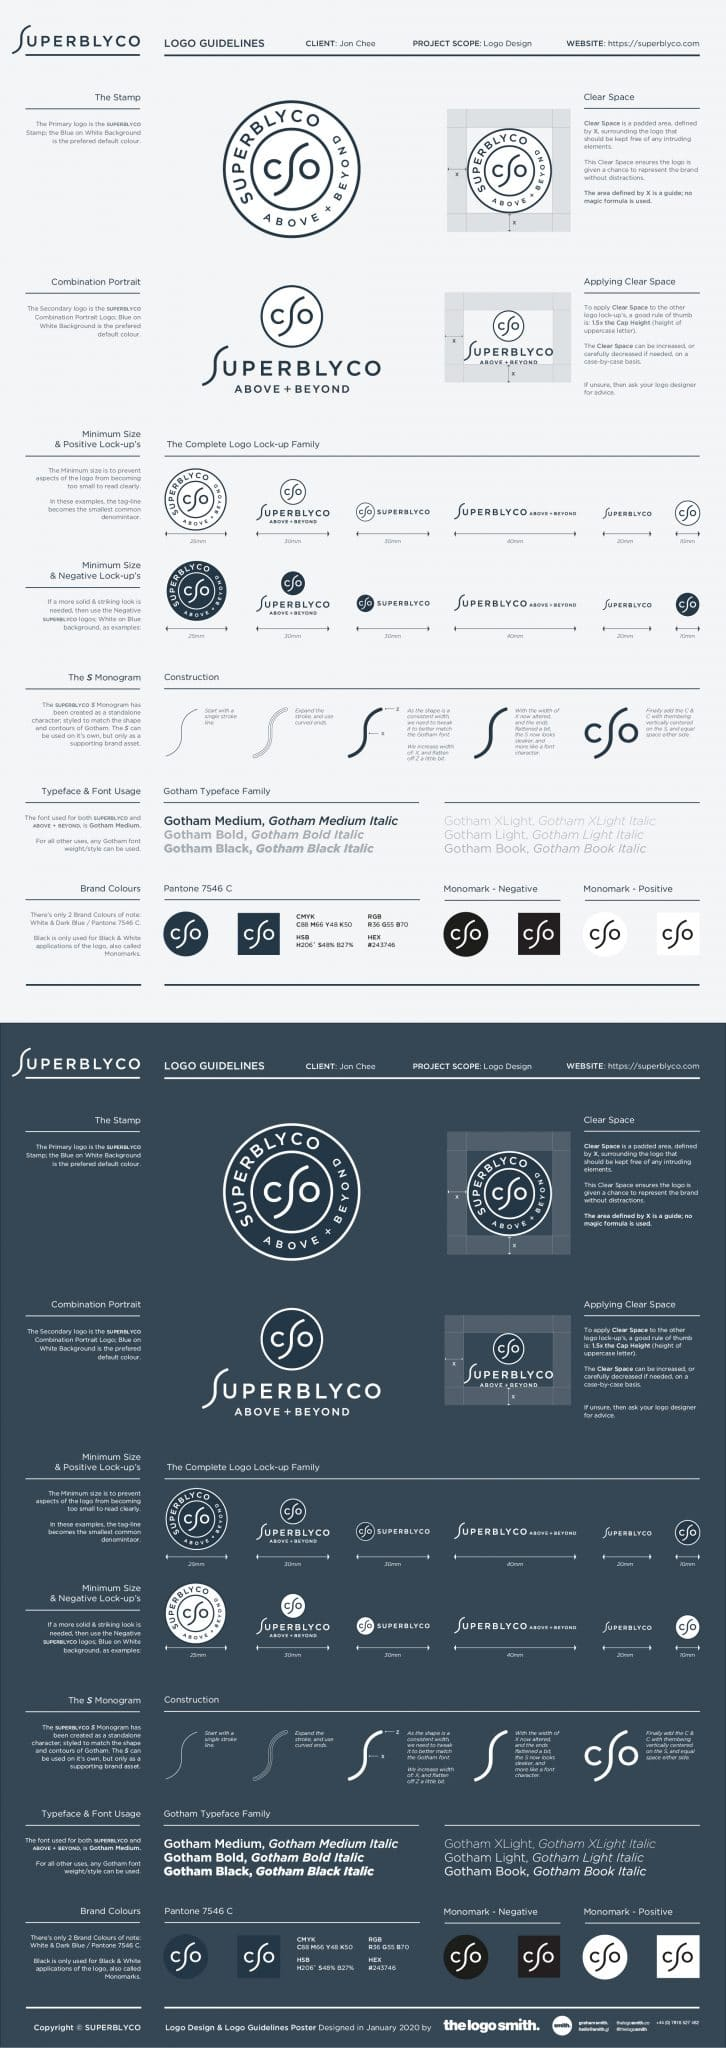 Logo Guidelines Template Poster